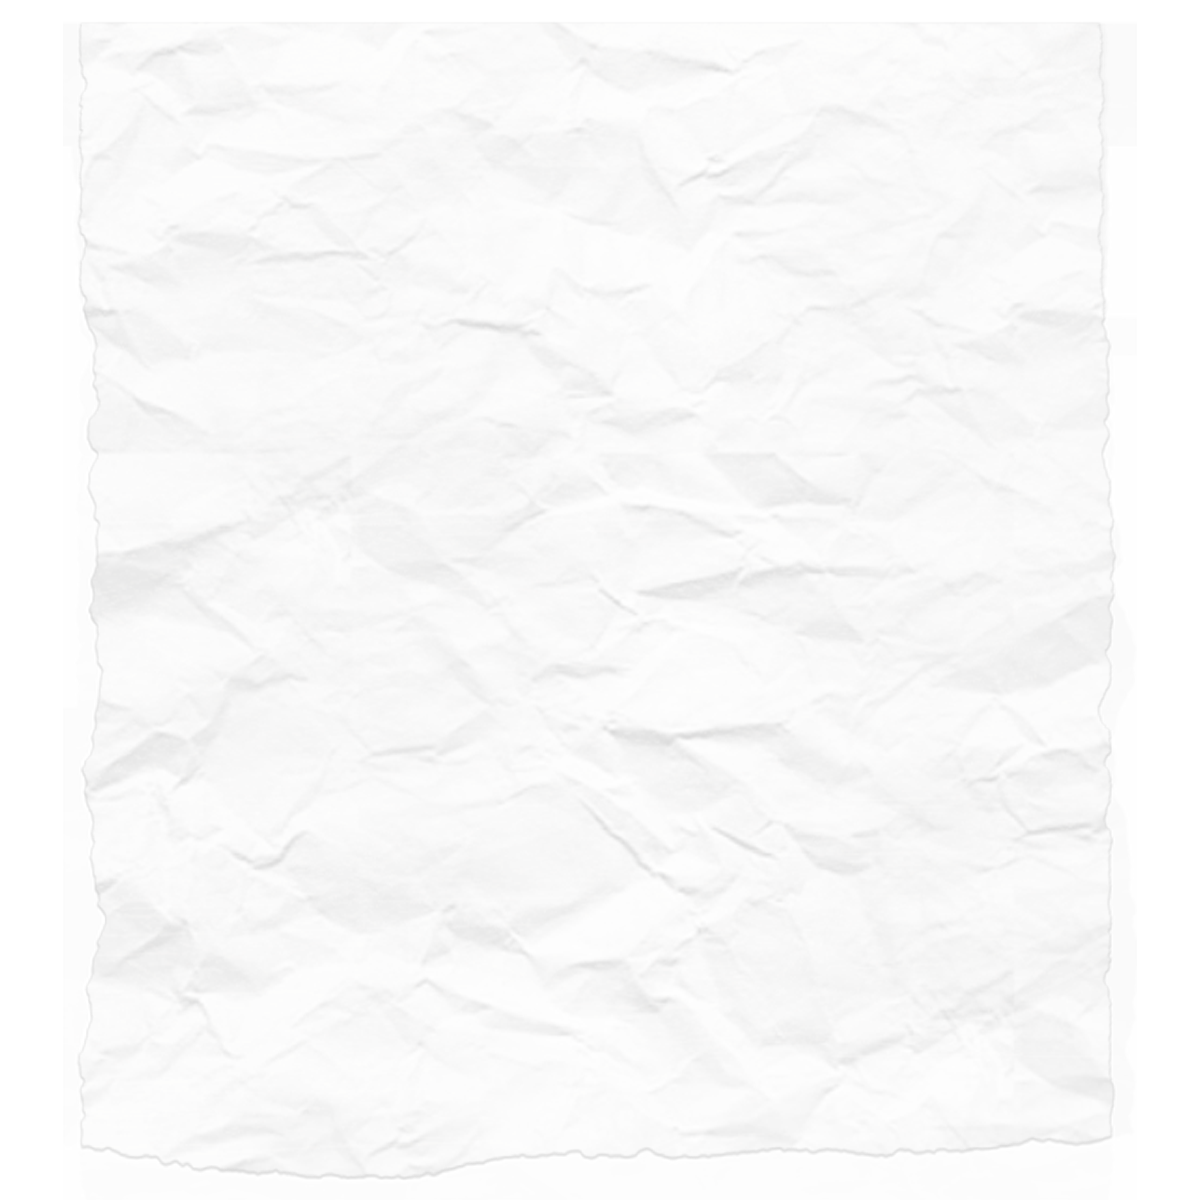 piece of paper